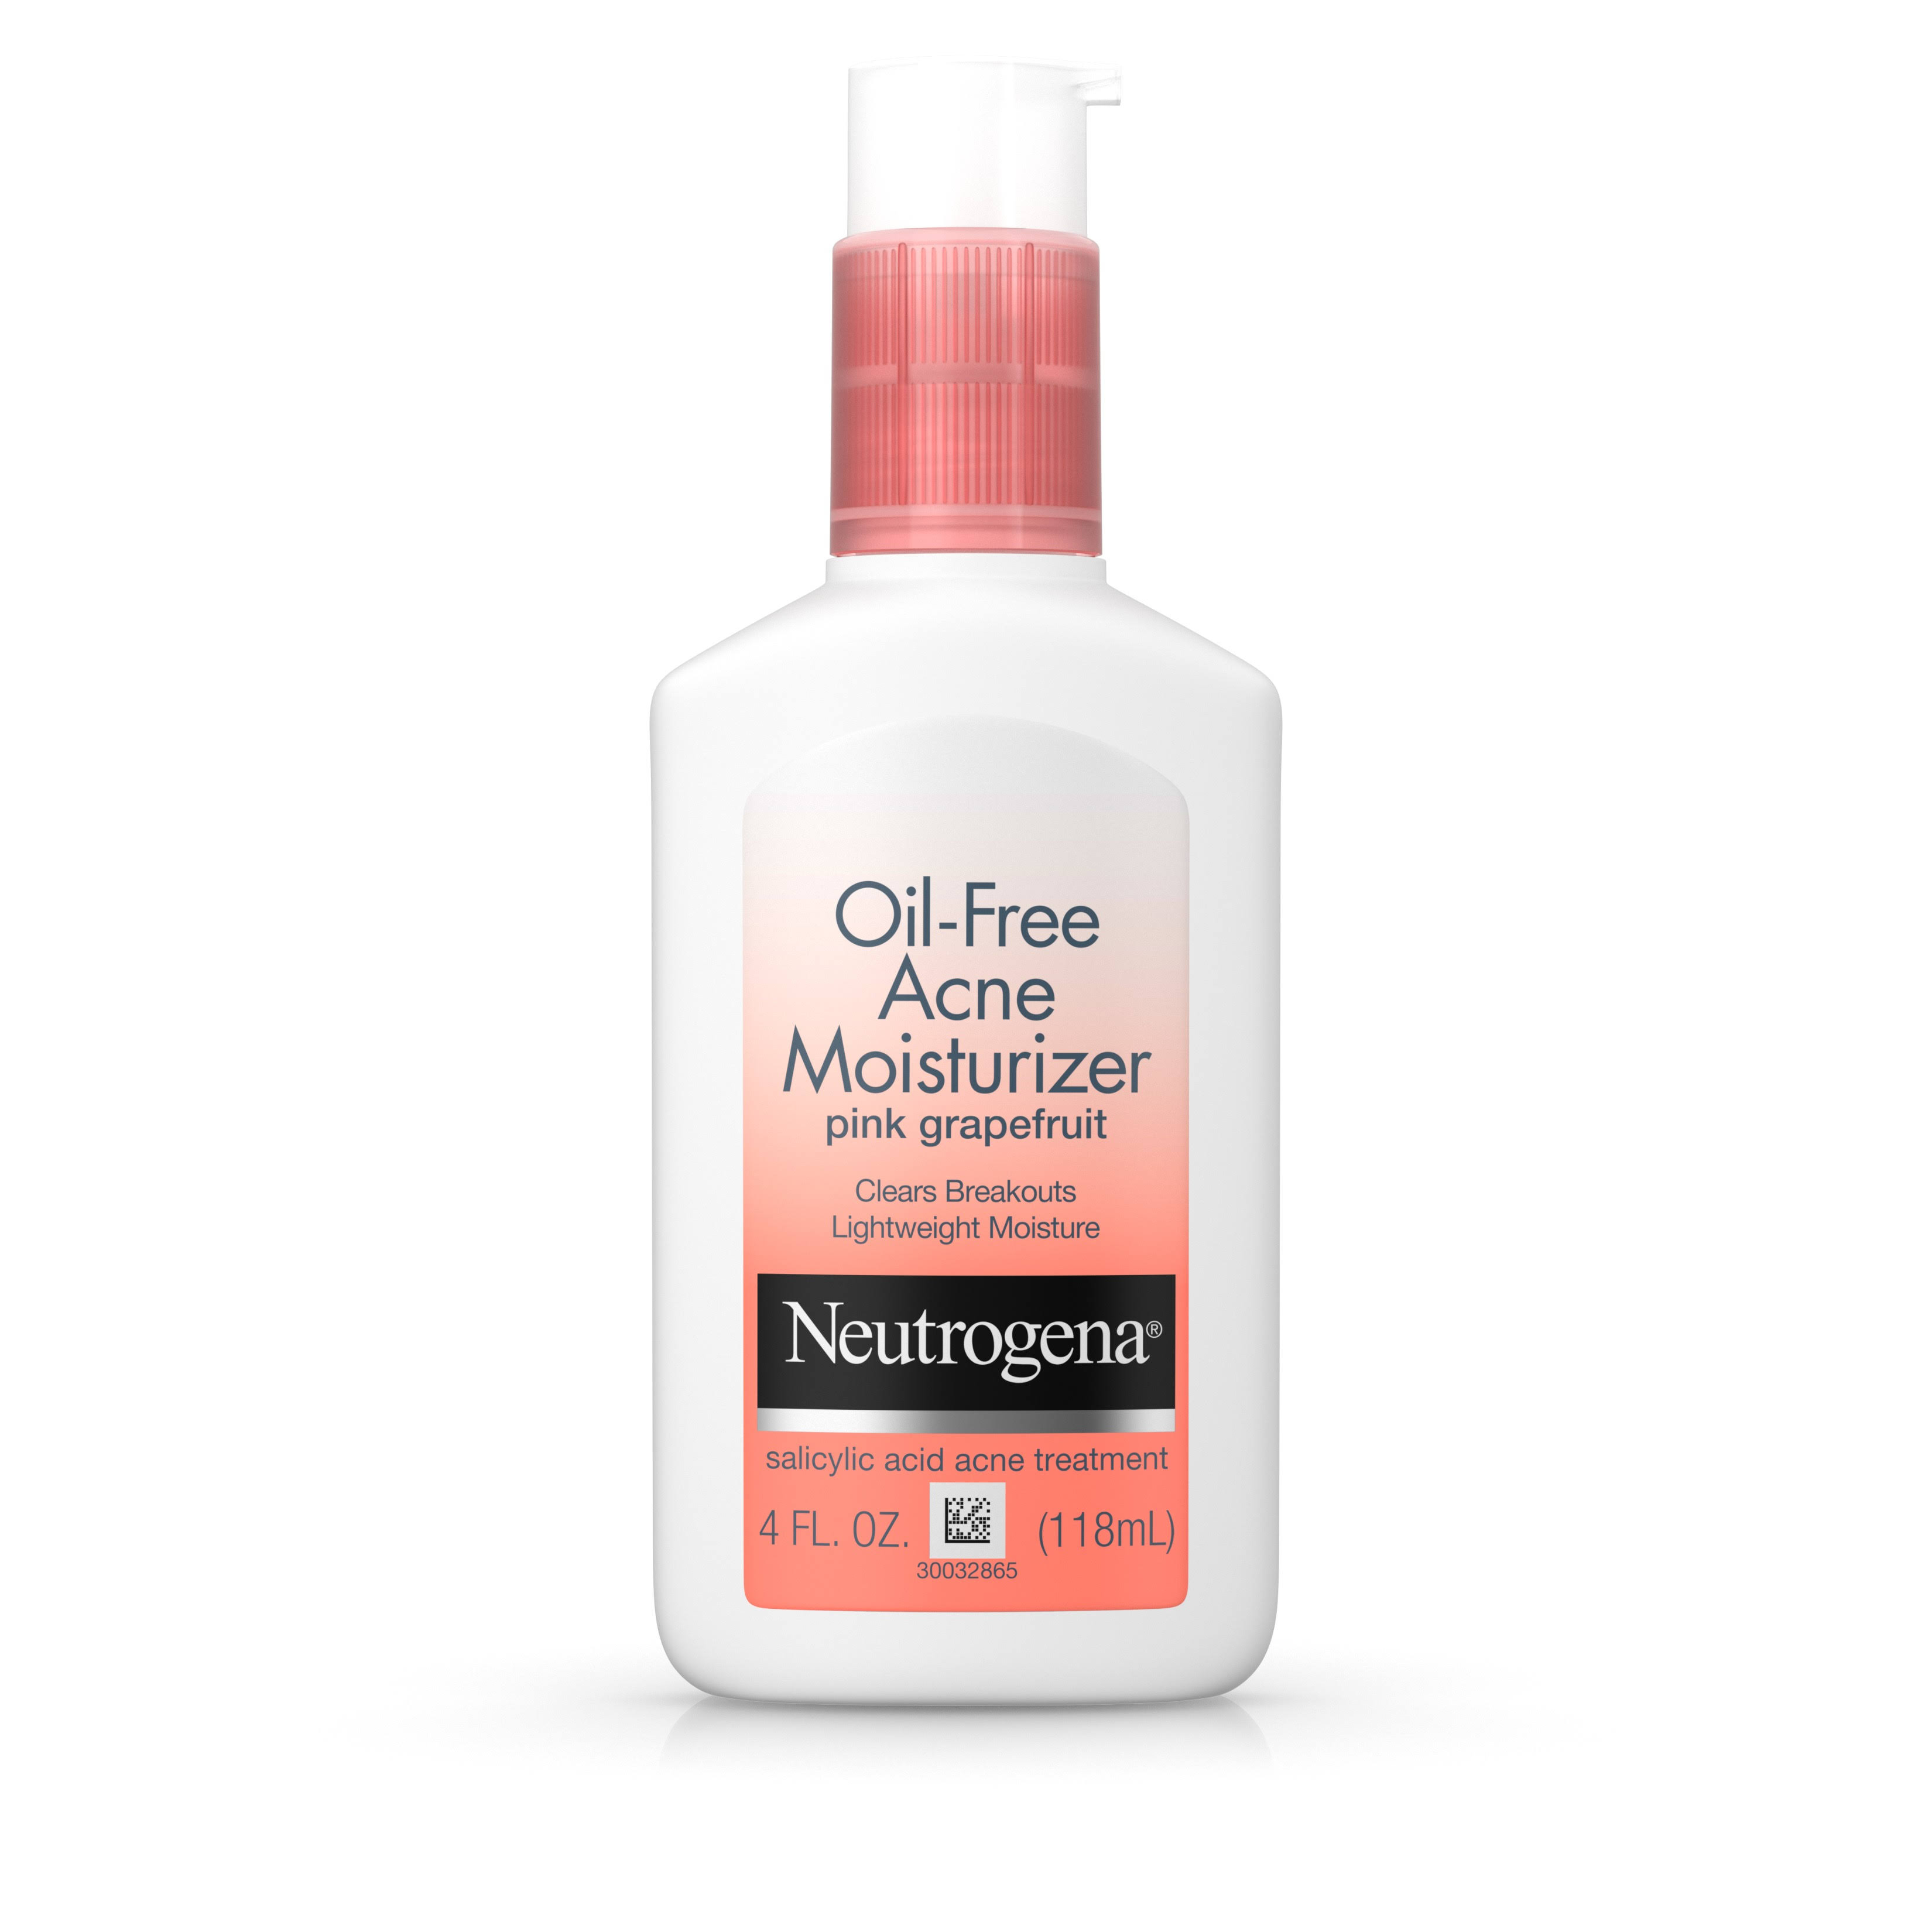 Neutrogena Pink Grapefruit Oil Free Acne Moisturizer - 4oz